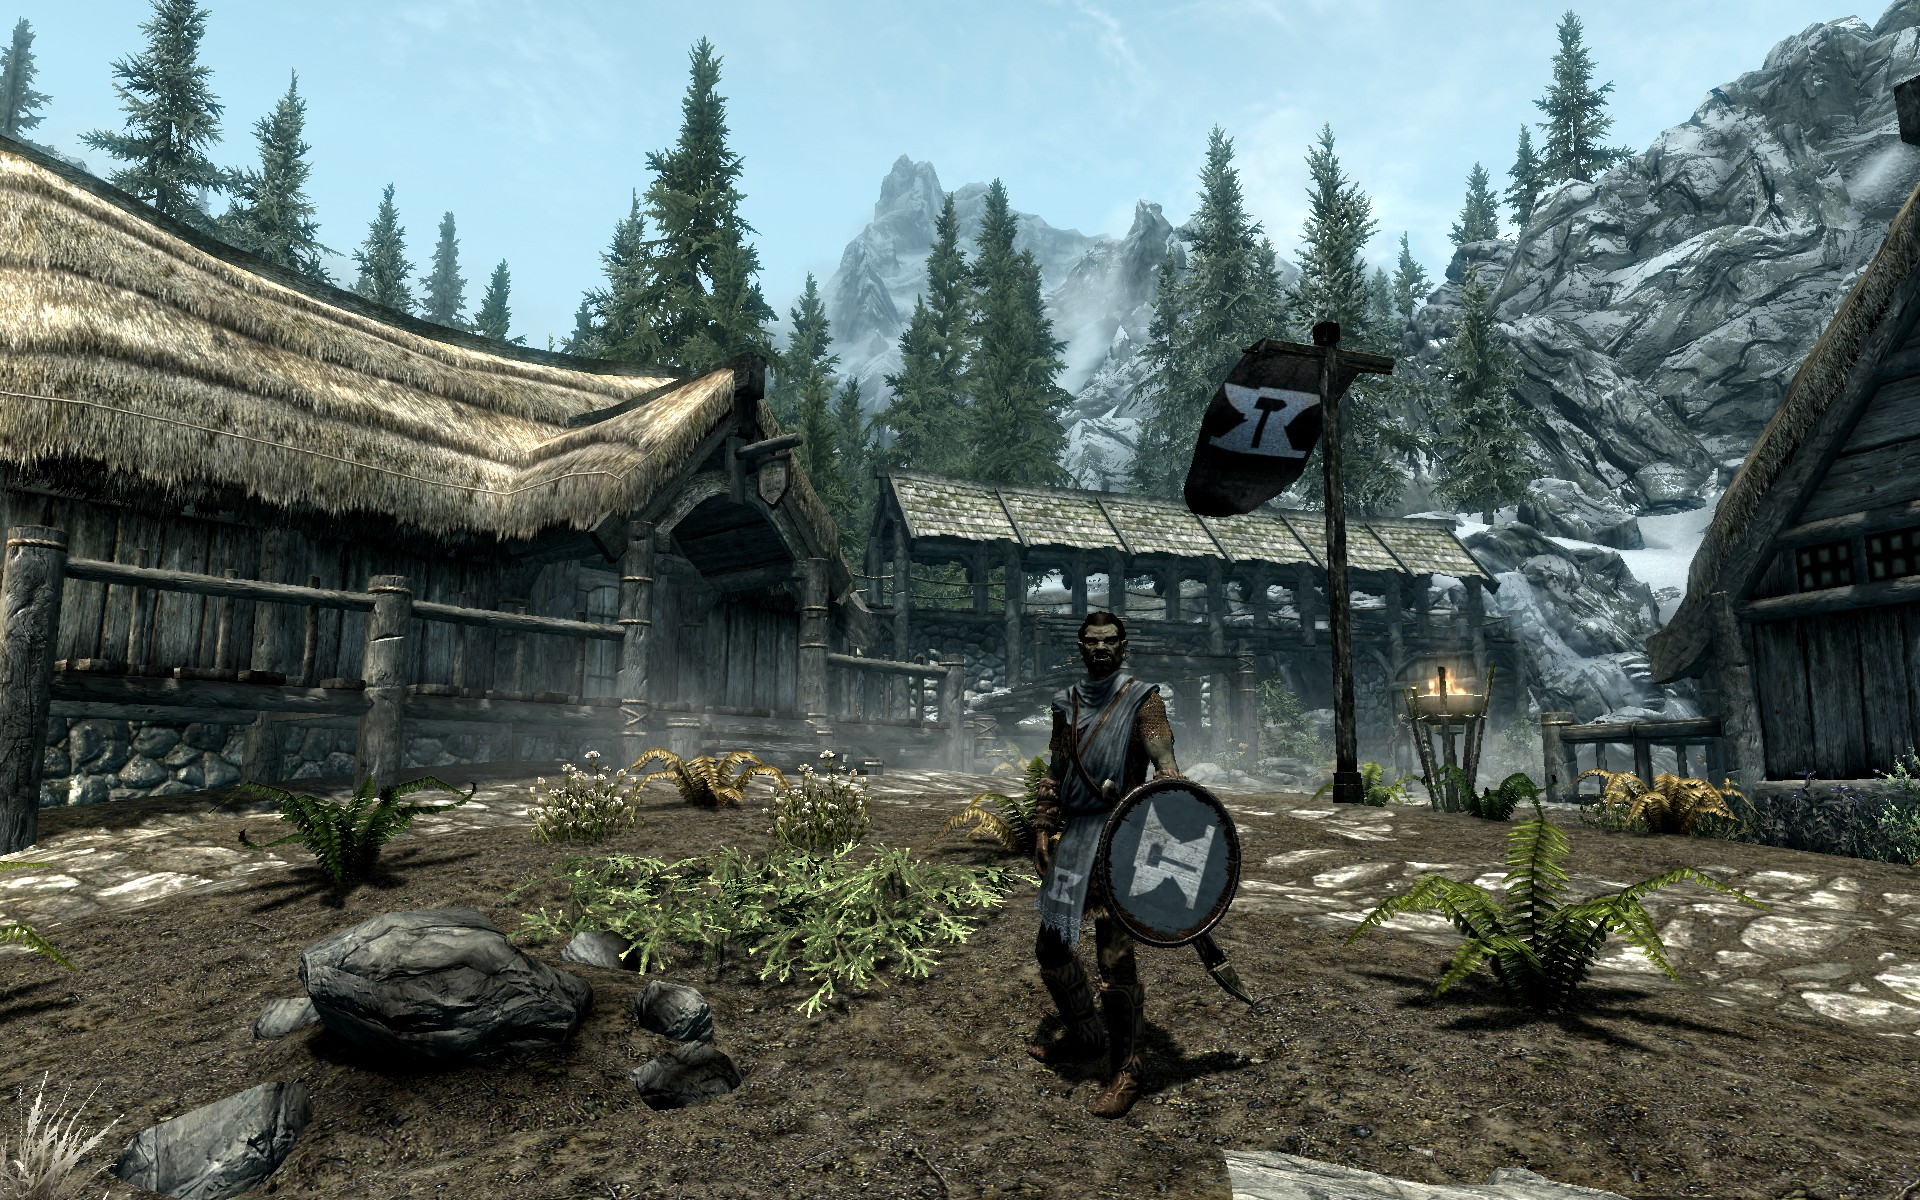 Helgen Reborn  mod page  on the Skyrim Nexus